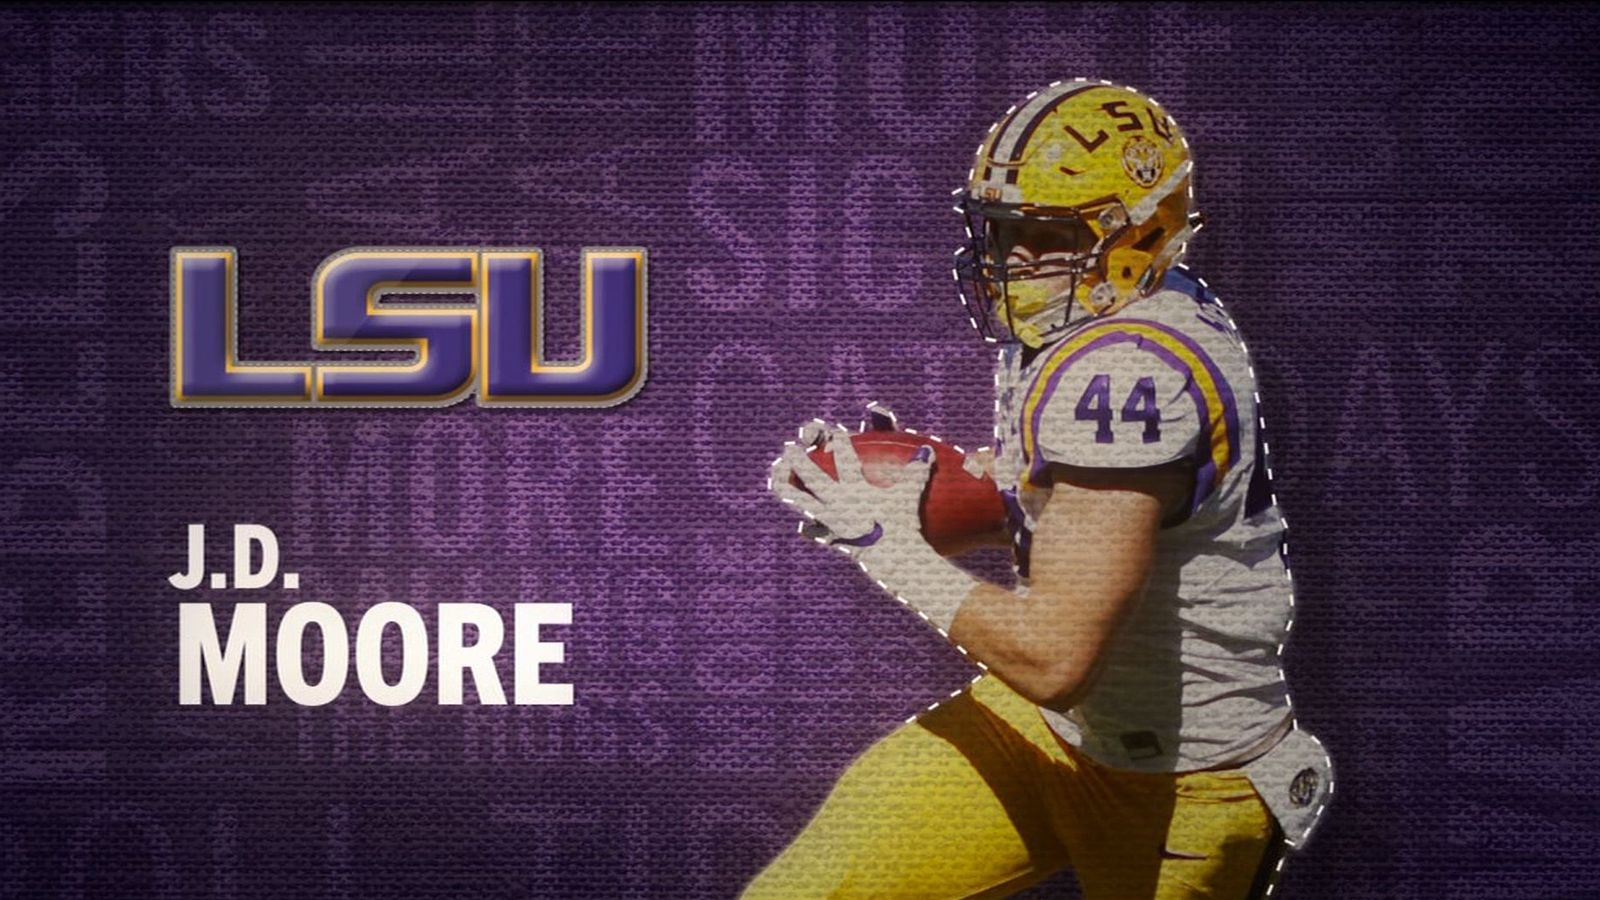 I am the SEC: LSU's J.D. Moore